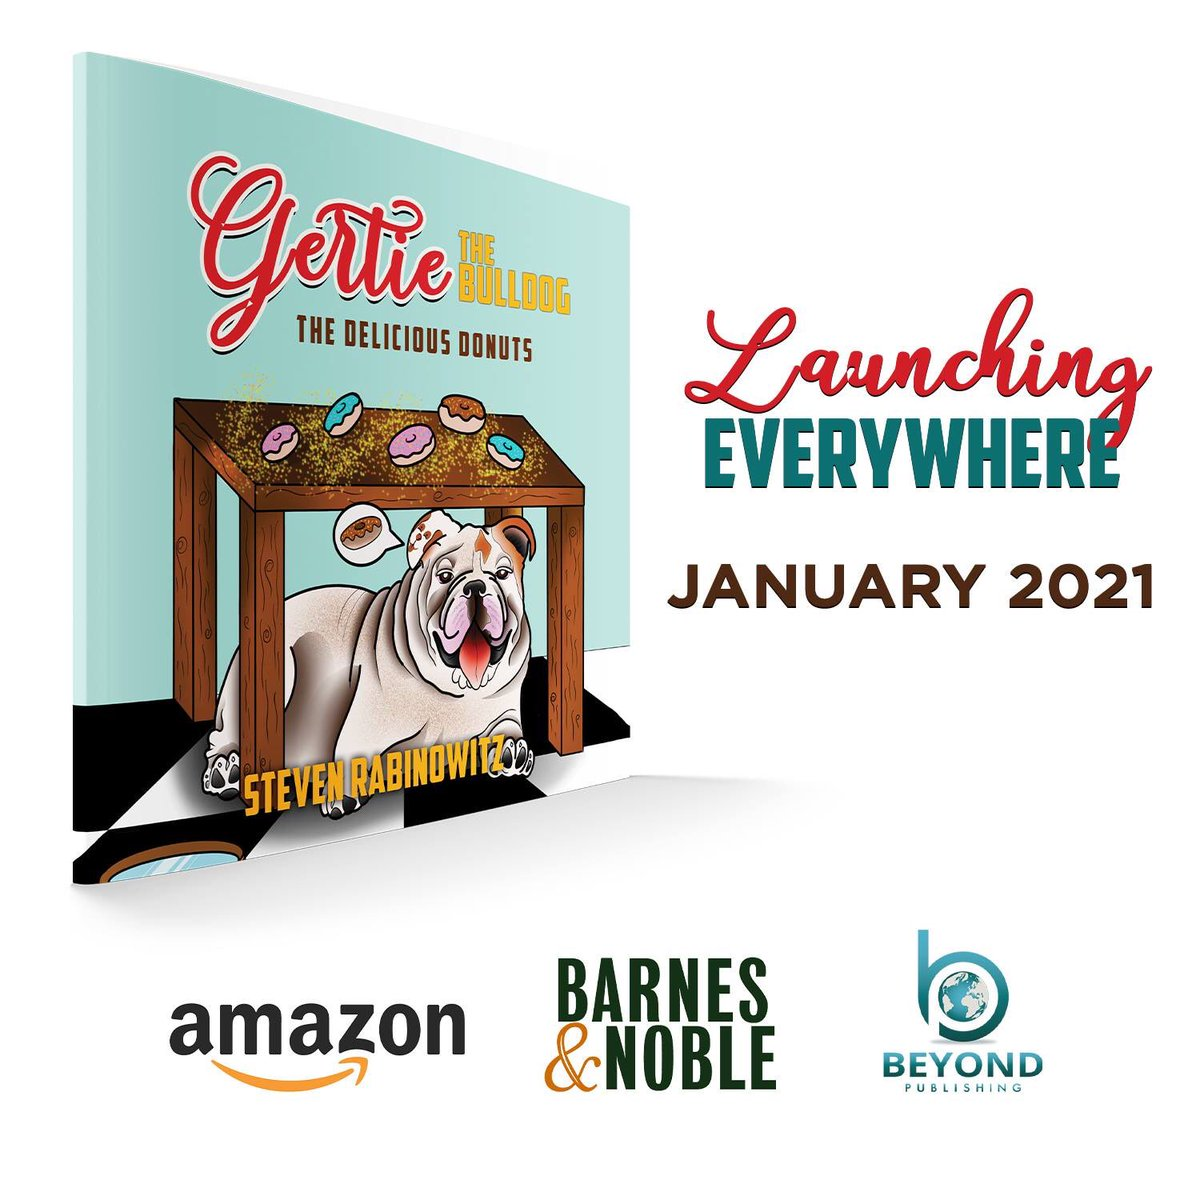 """Only Two more Weeks until the Donut Queens Royal Debut. Her Children's Book """"Gertie the Bulldog, The Delicious Donuts"""" will be available on Amazon and Barnes and Noble soon. Stay tuned... Love, Gertie's Family 🍩🐾🐶🐾 #gertiethebulldog #gertiegotdonuts #queenofallbulldogs"""